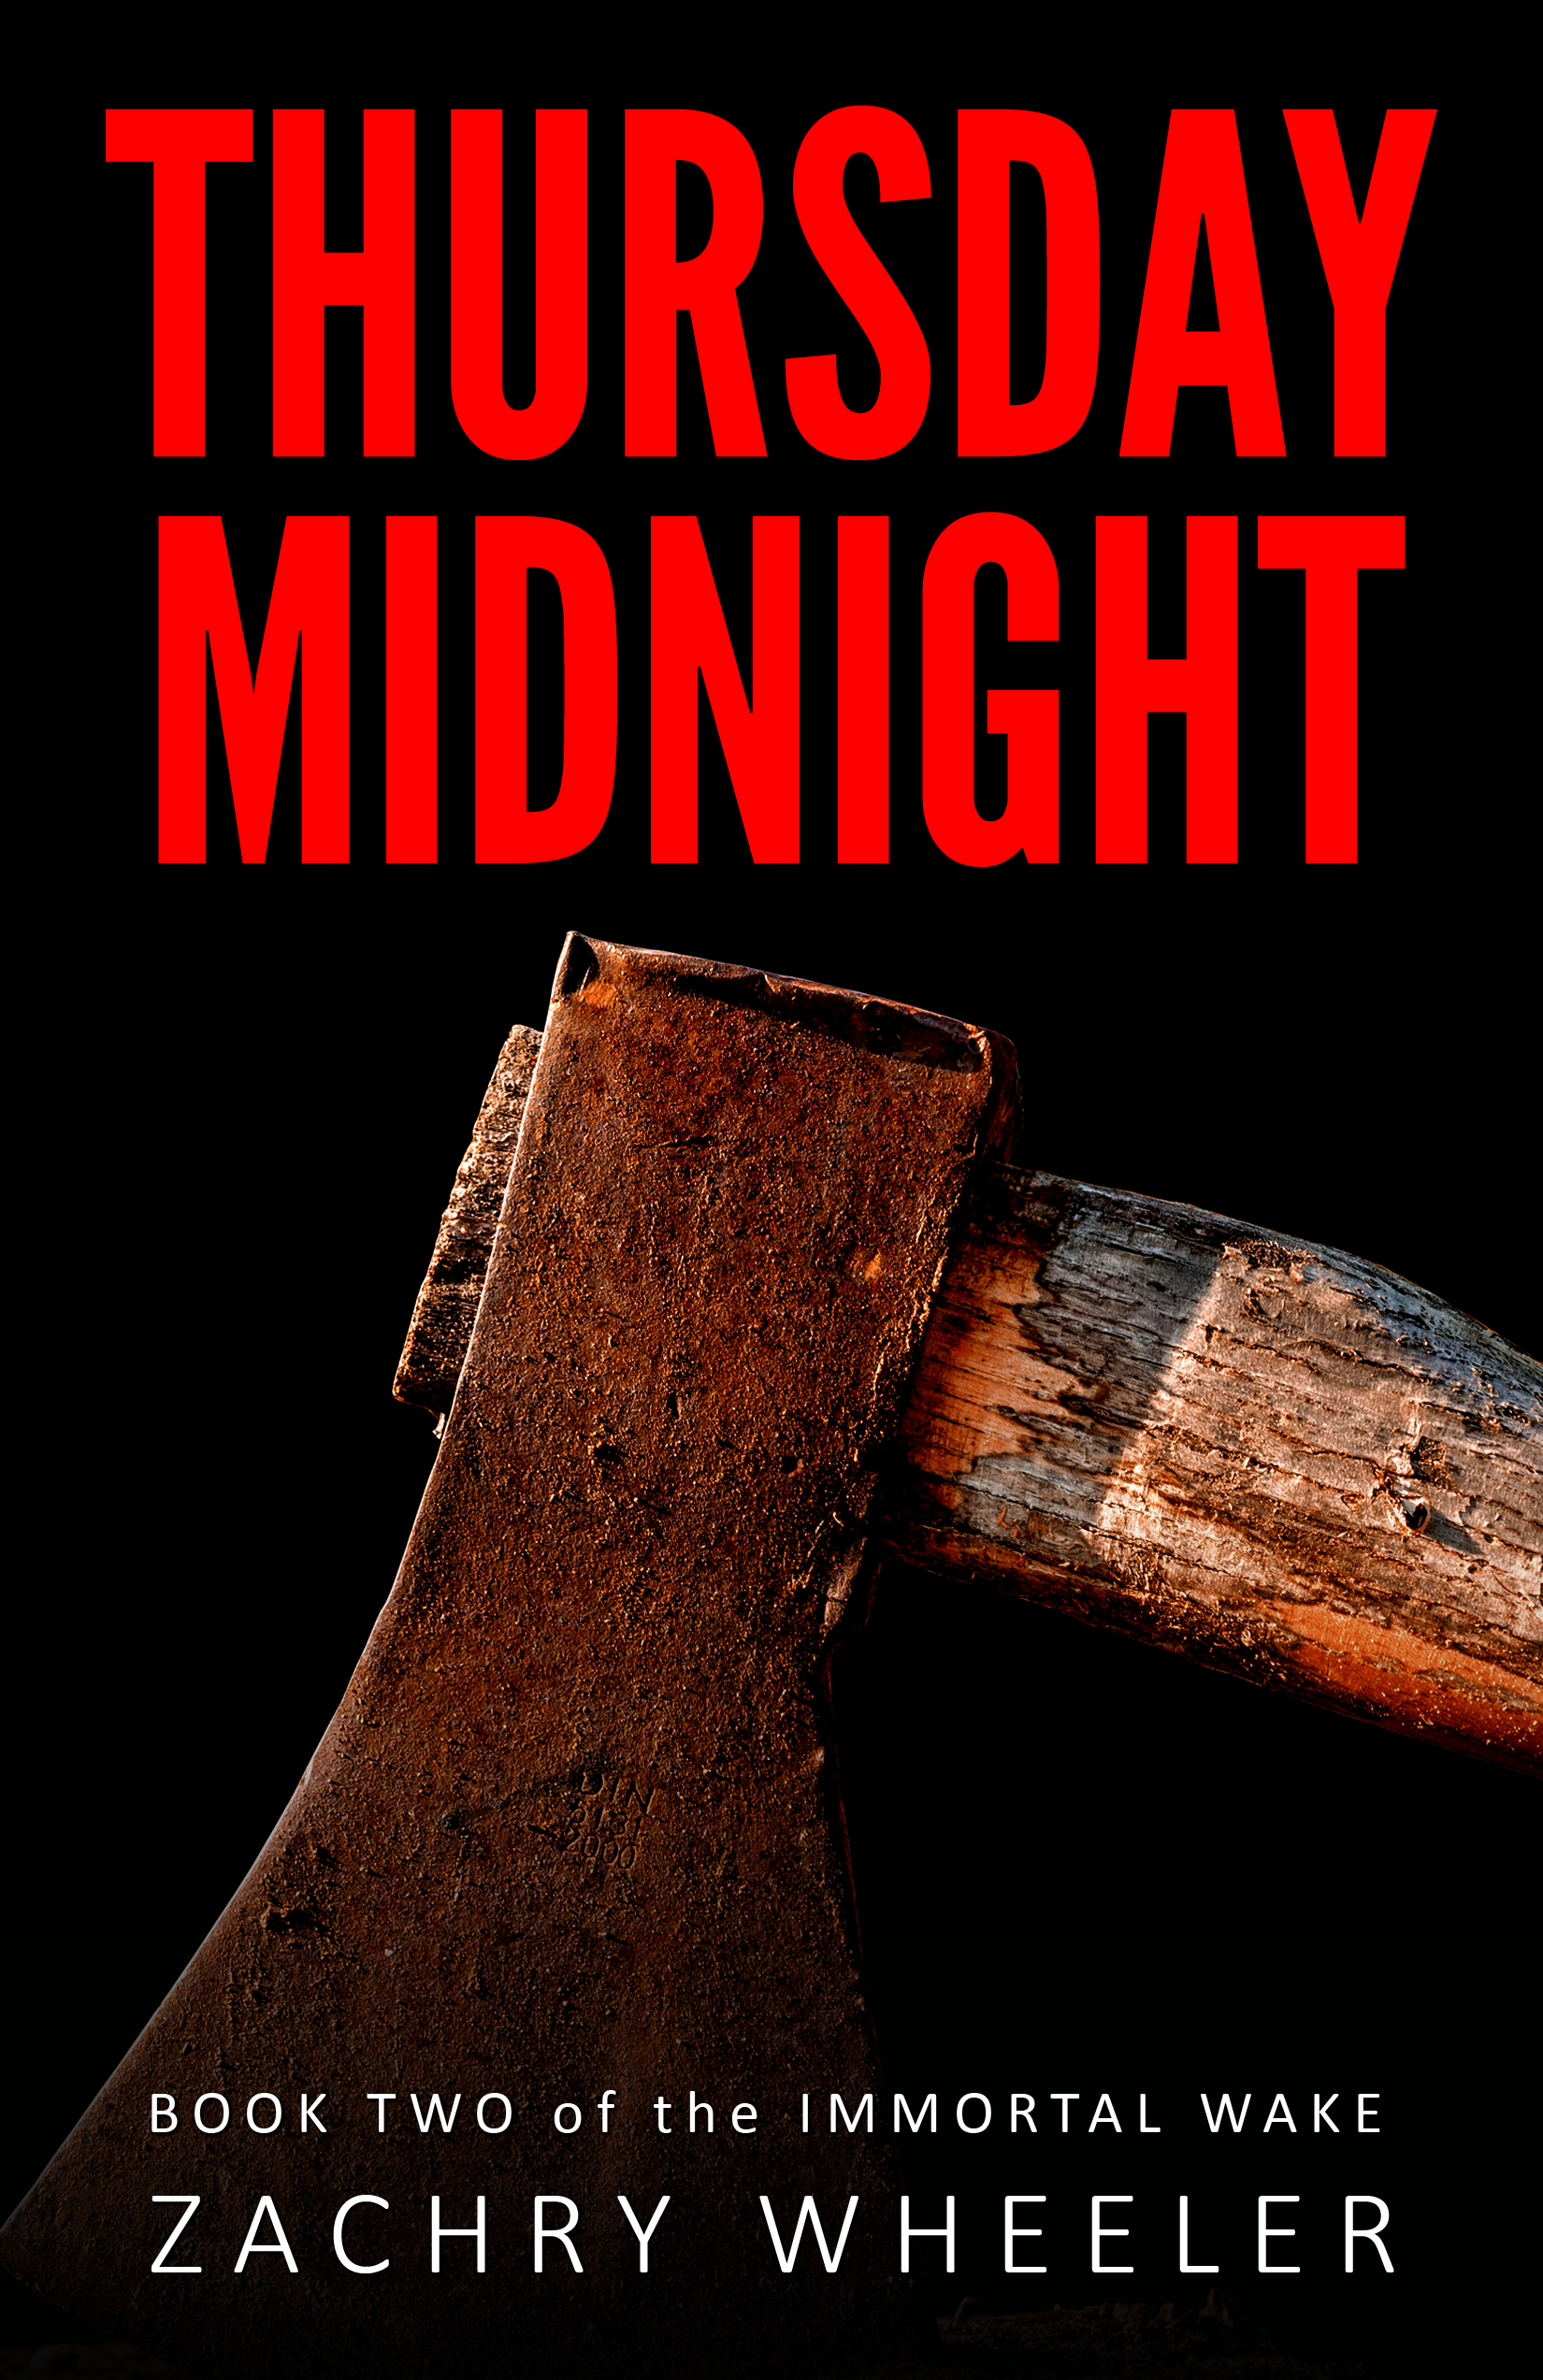 Learn more about Thursday Midnight (Book 2 of the Immortal Wake)